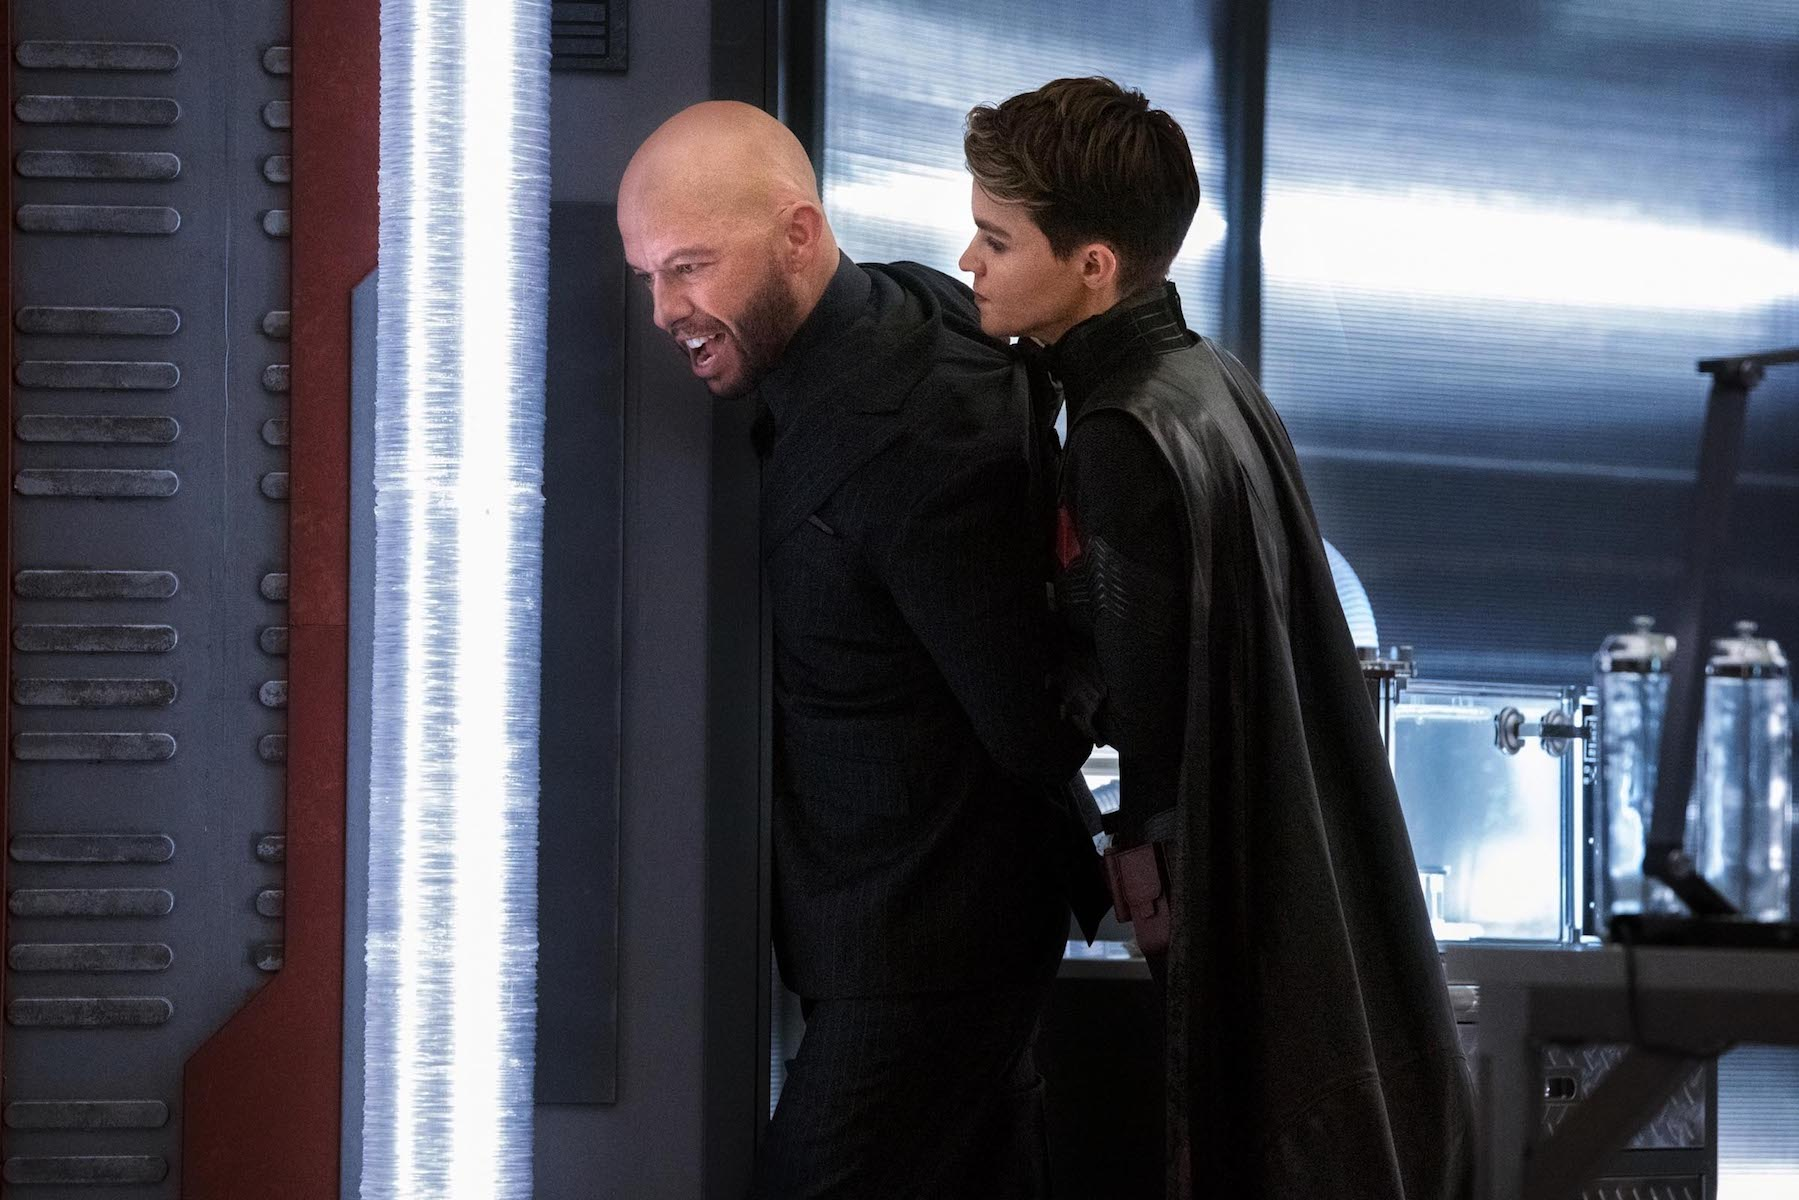 Jon Cryer as Lex Luthor and Ruby Rose as Kate Kane/Batwoman